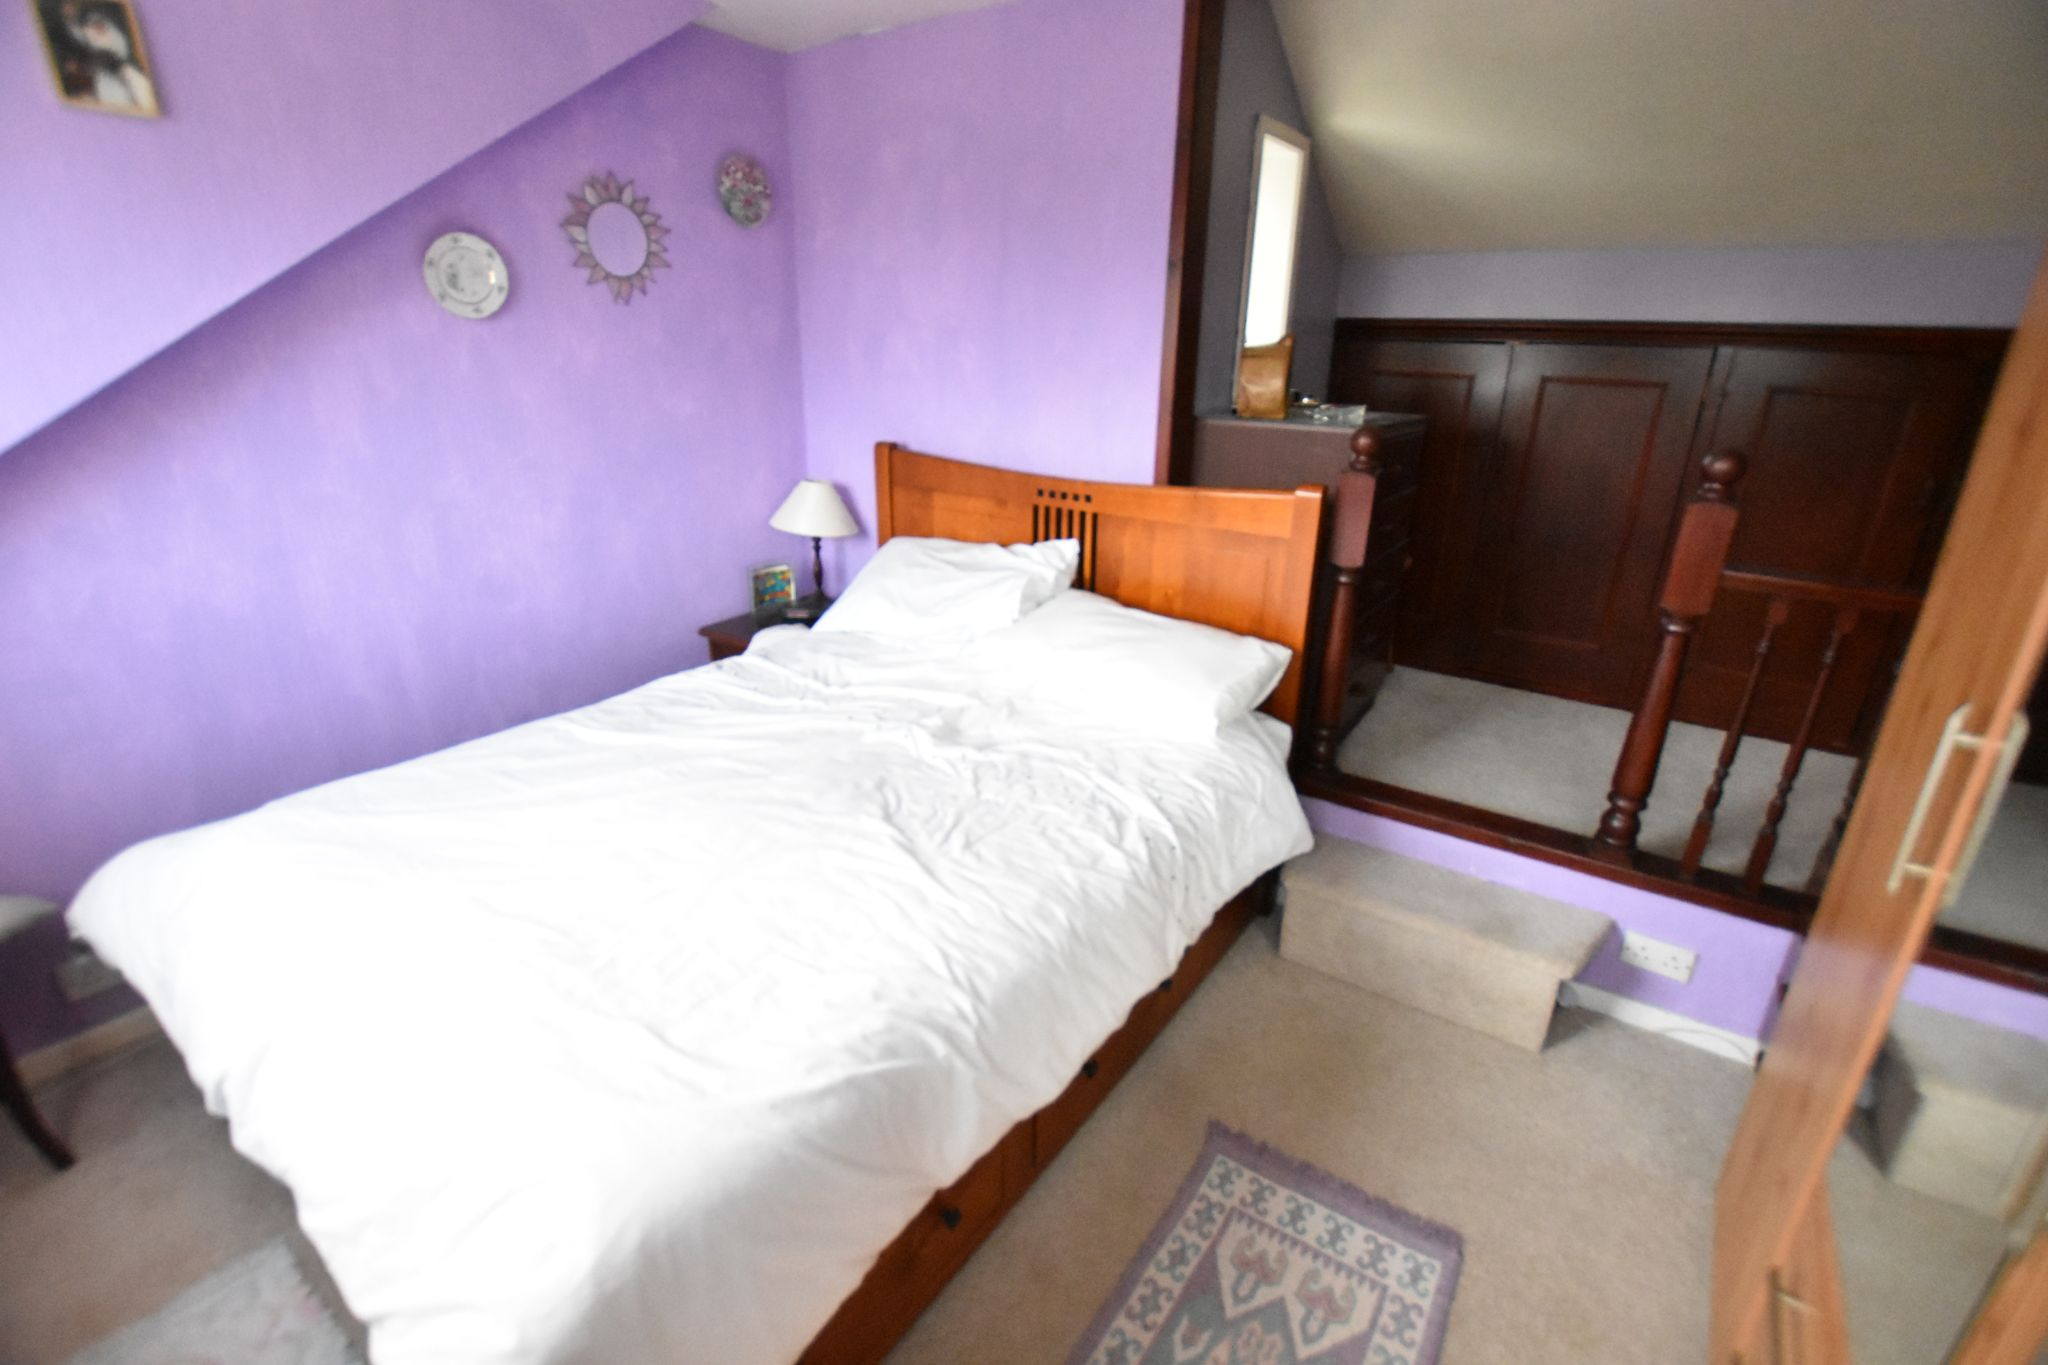 Image 1 of 4 of BEDROOM 2, on Accommodation Comprising for